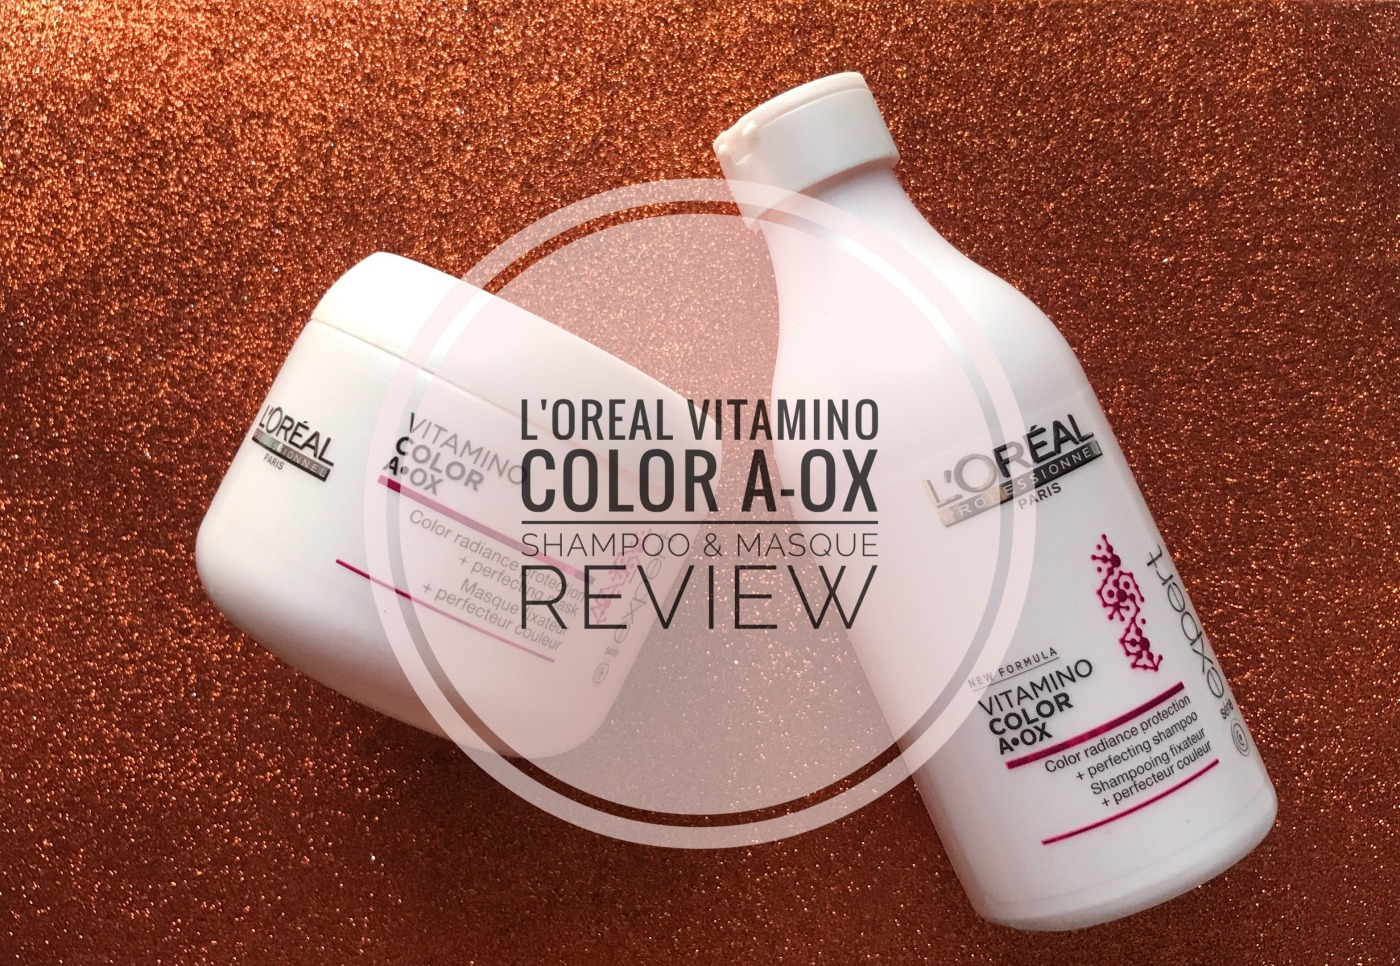 L'Oreal Professionnel Vitamino Color A-OX Shampoo & Masque